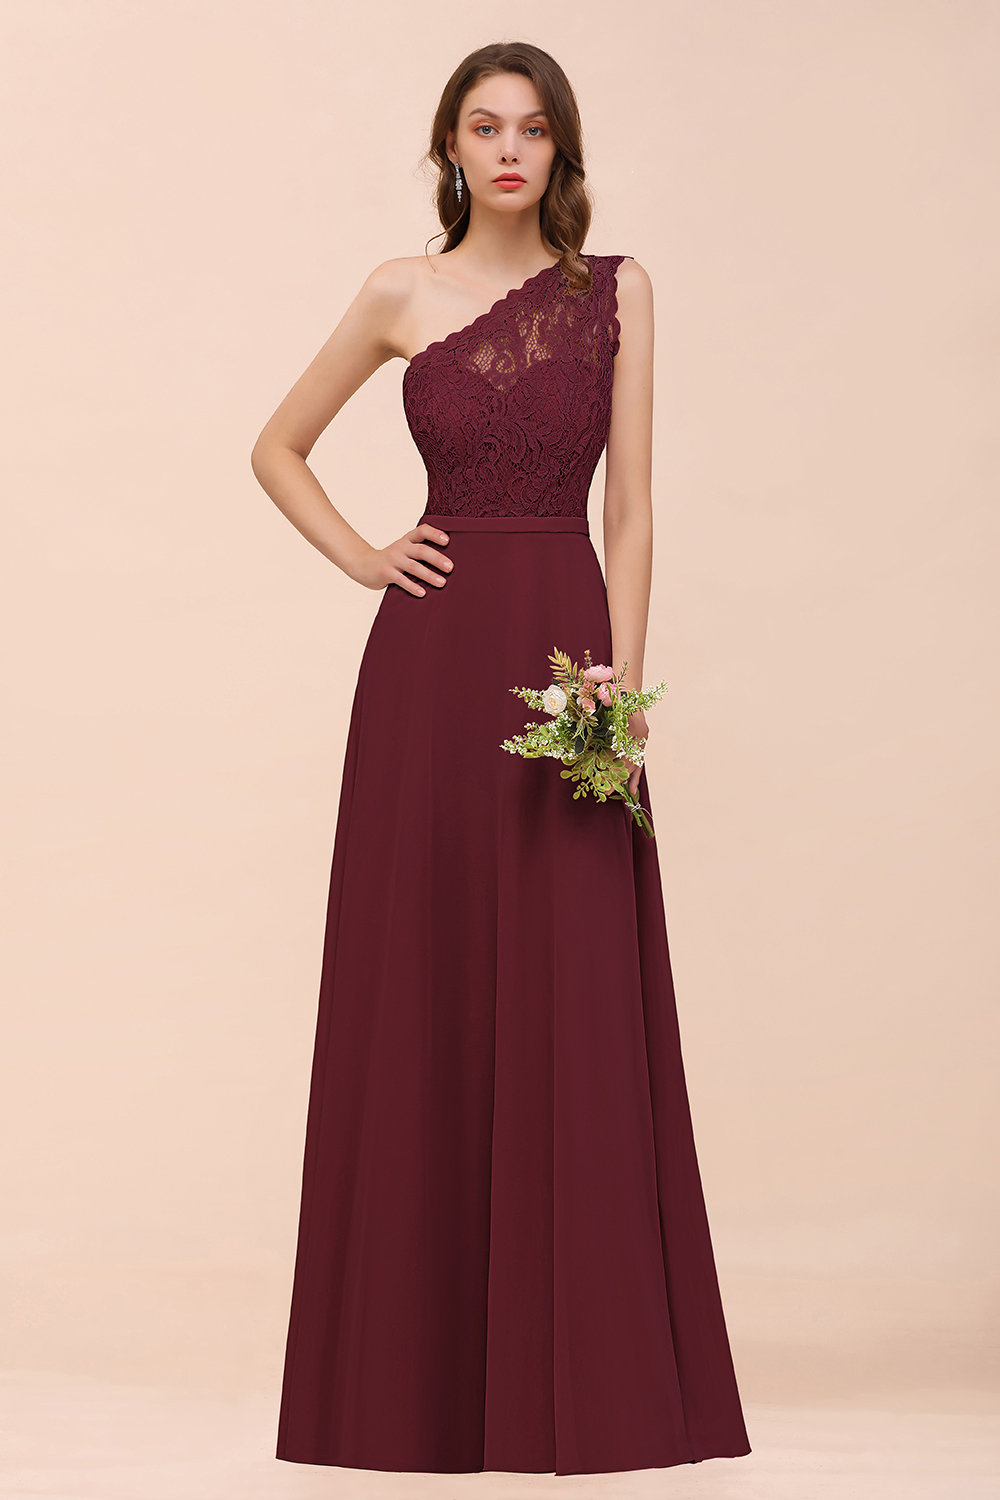 BMbridal New Arrival Dusty Rose One Shoulder Lace Long affordable Bridesmaid Dress